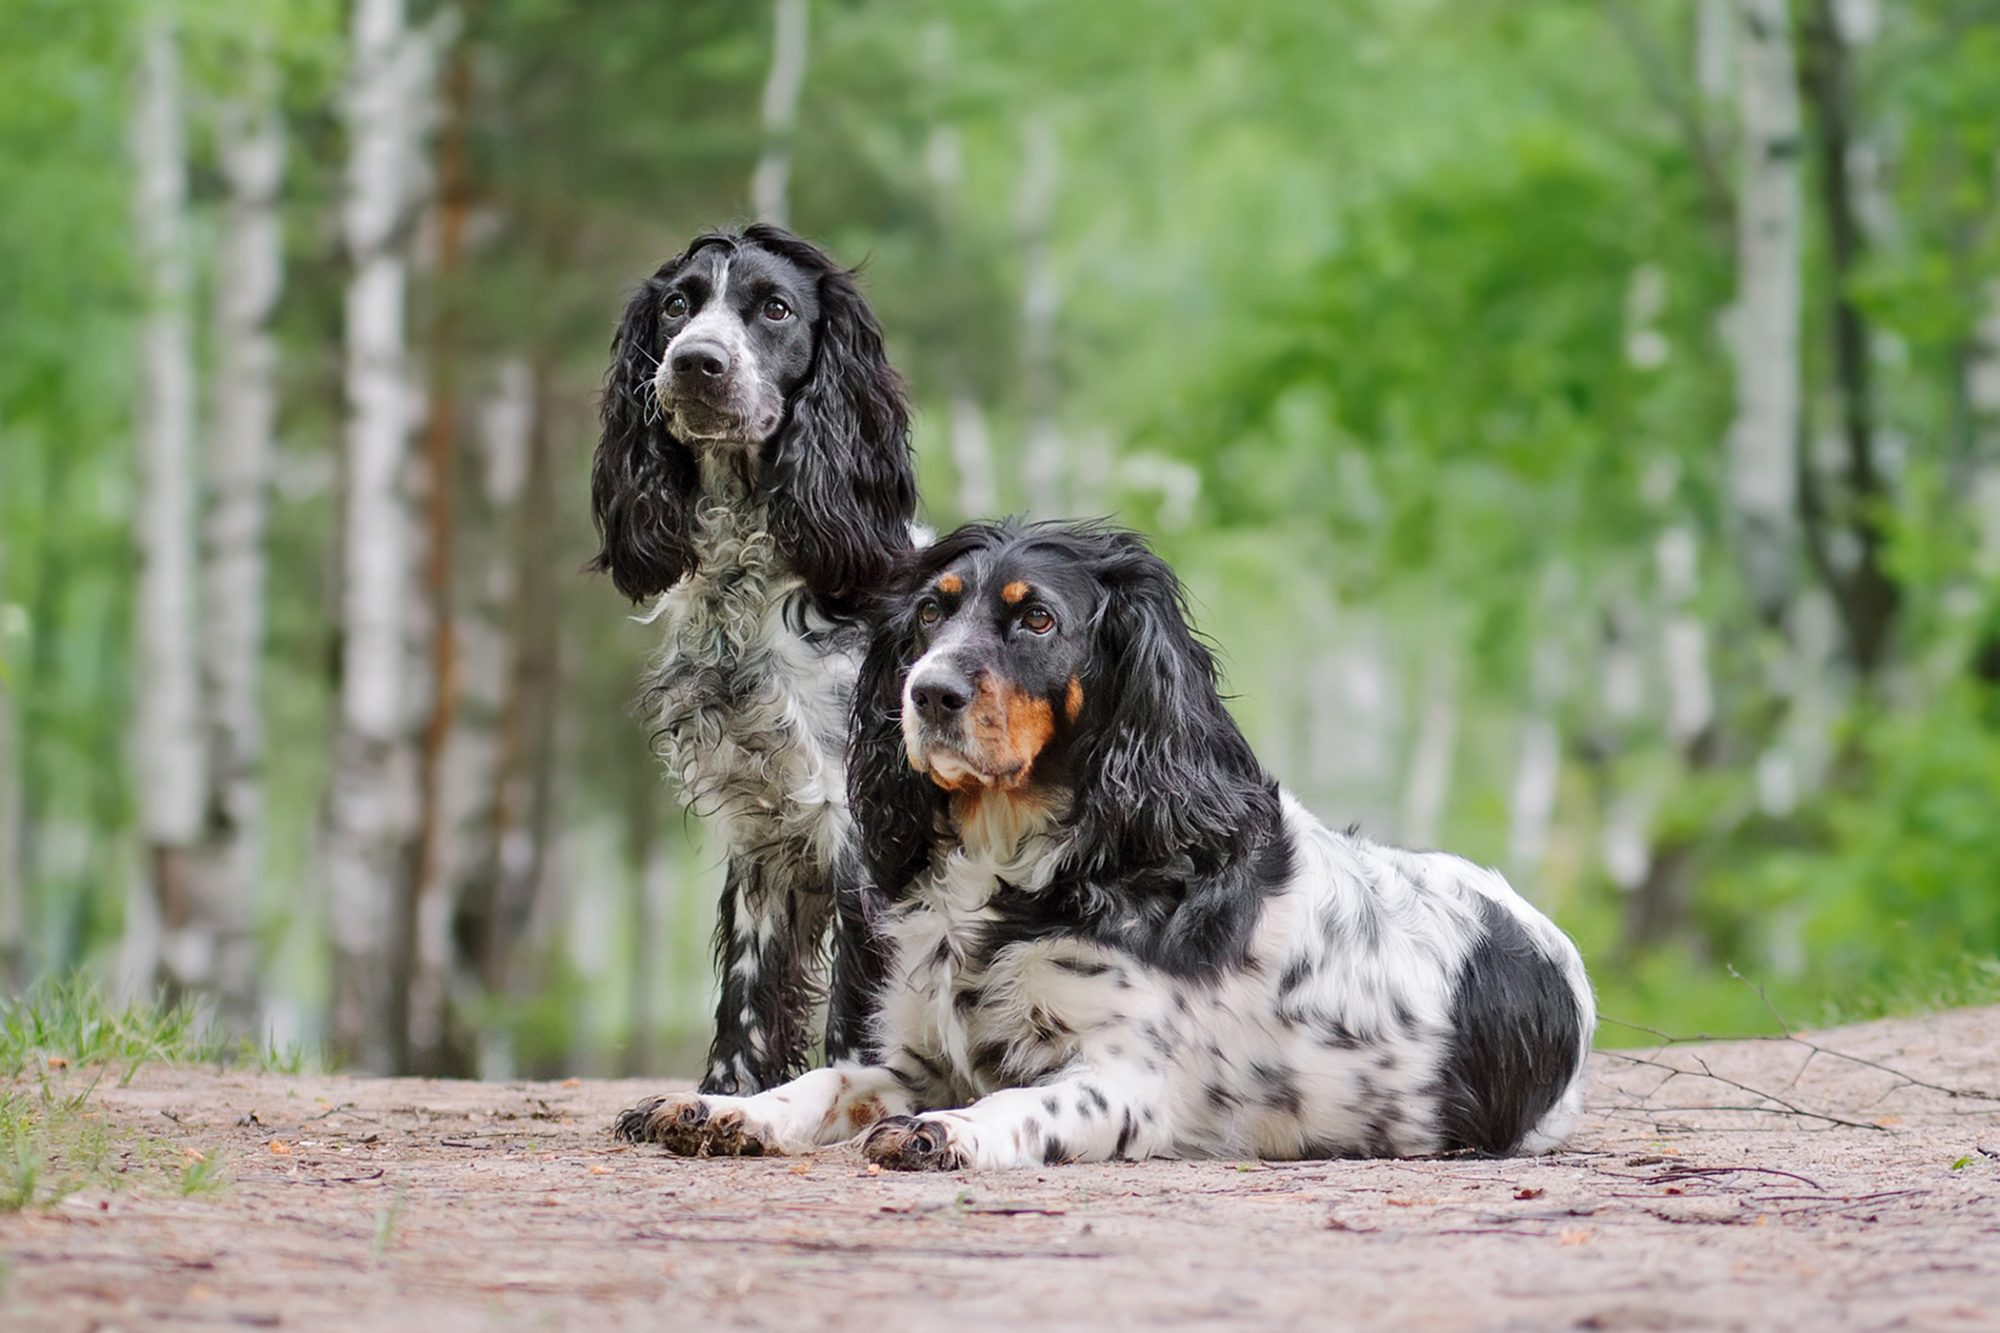 Two Russian Spaniels posing in a forest